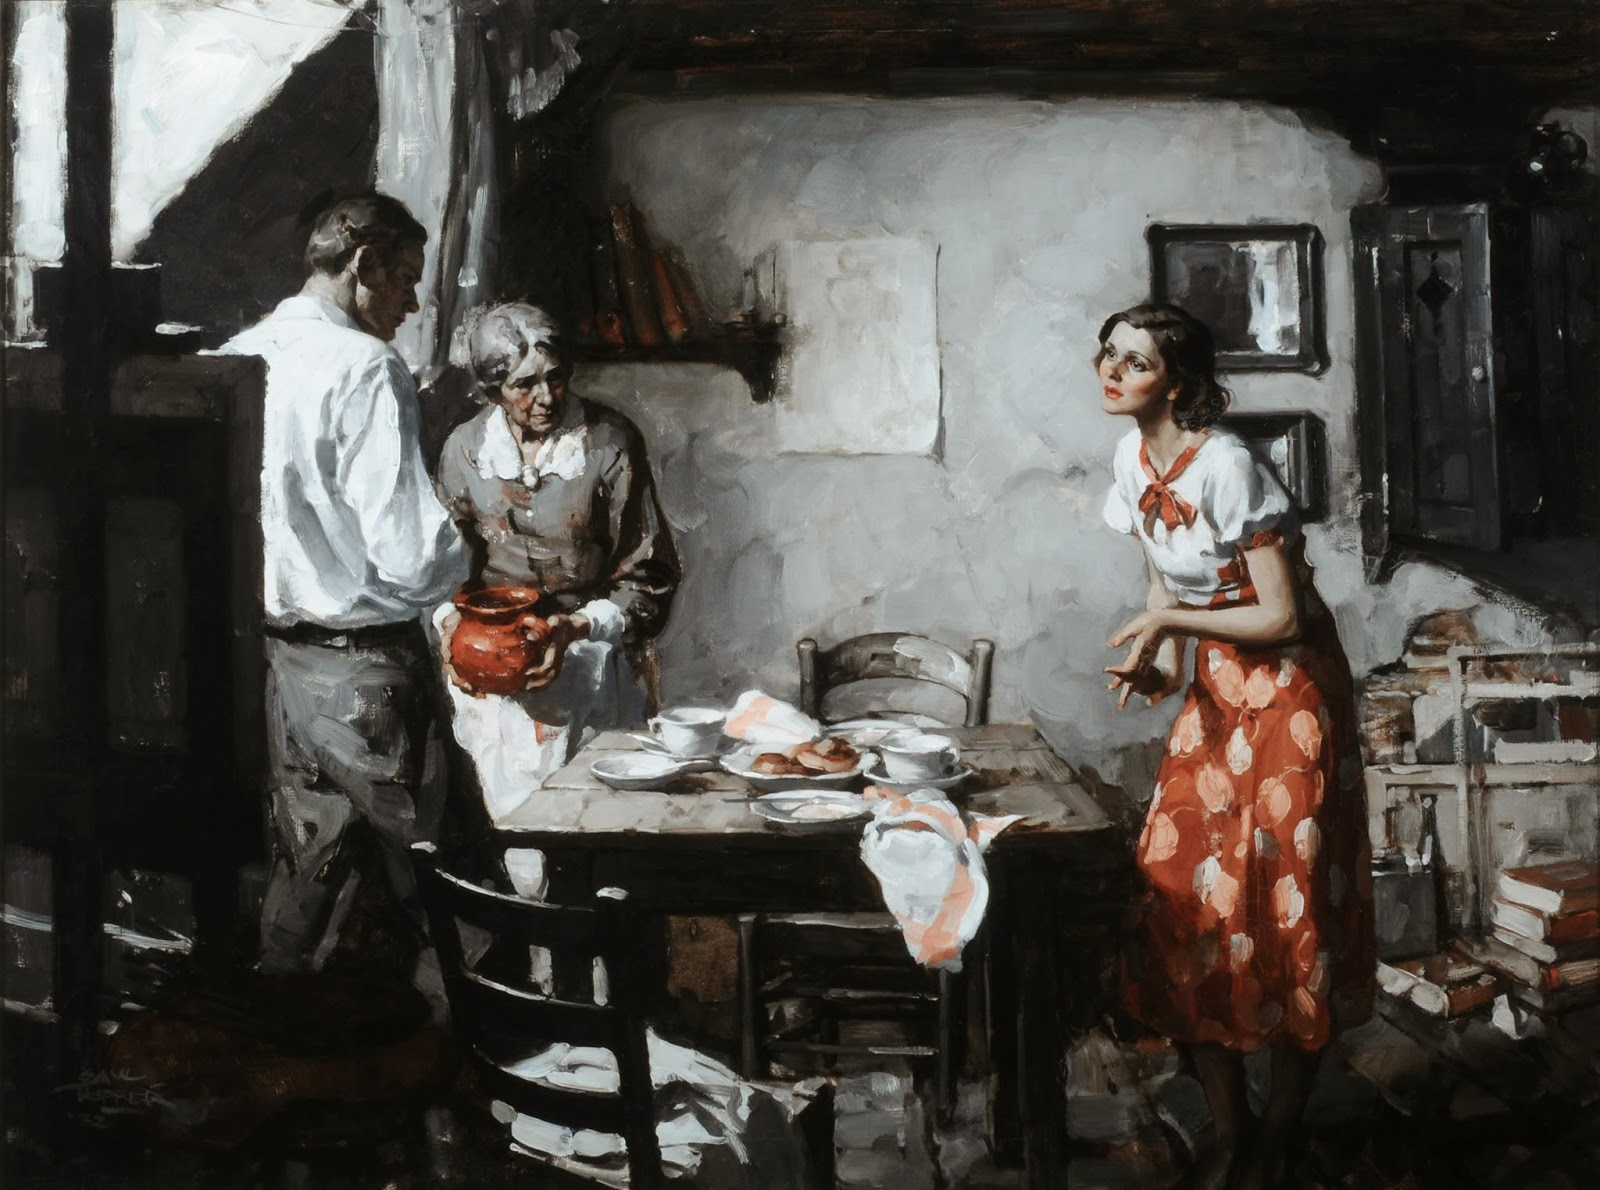 Inspiration: Saul Tepper